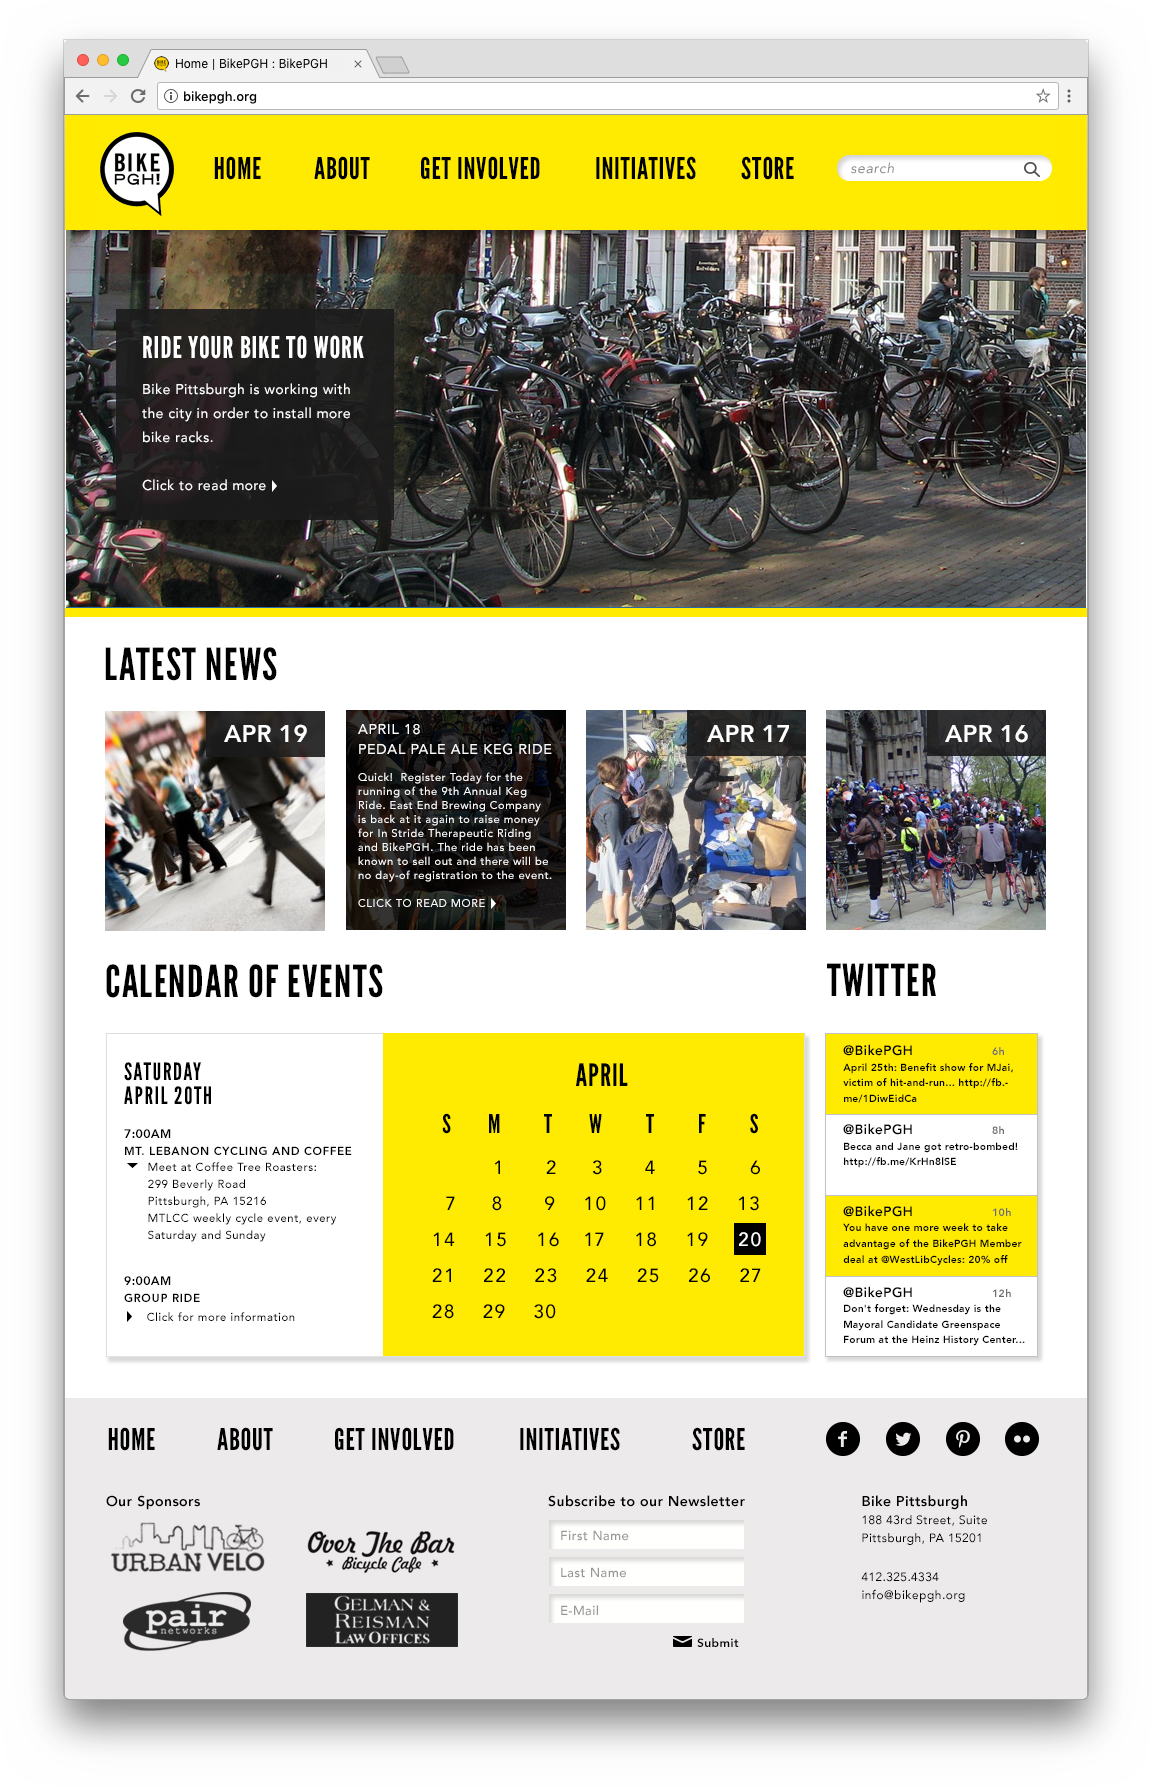 Redesigned homepage